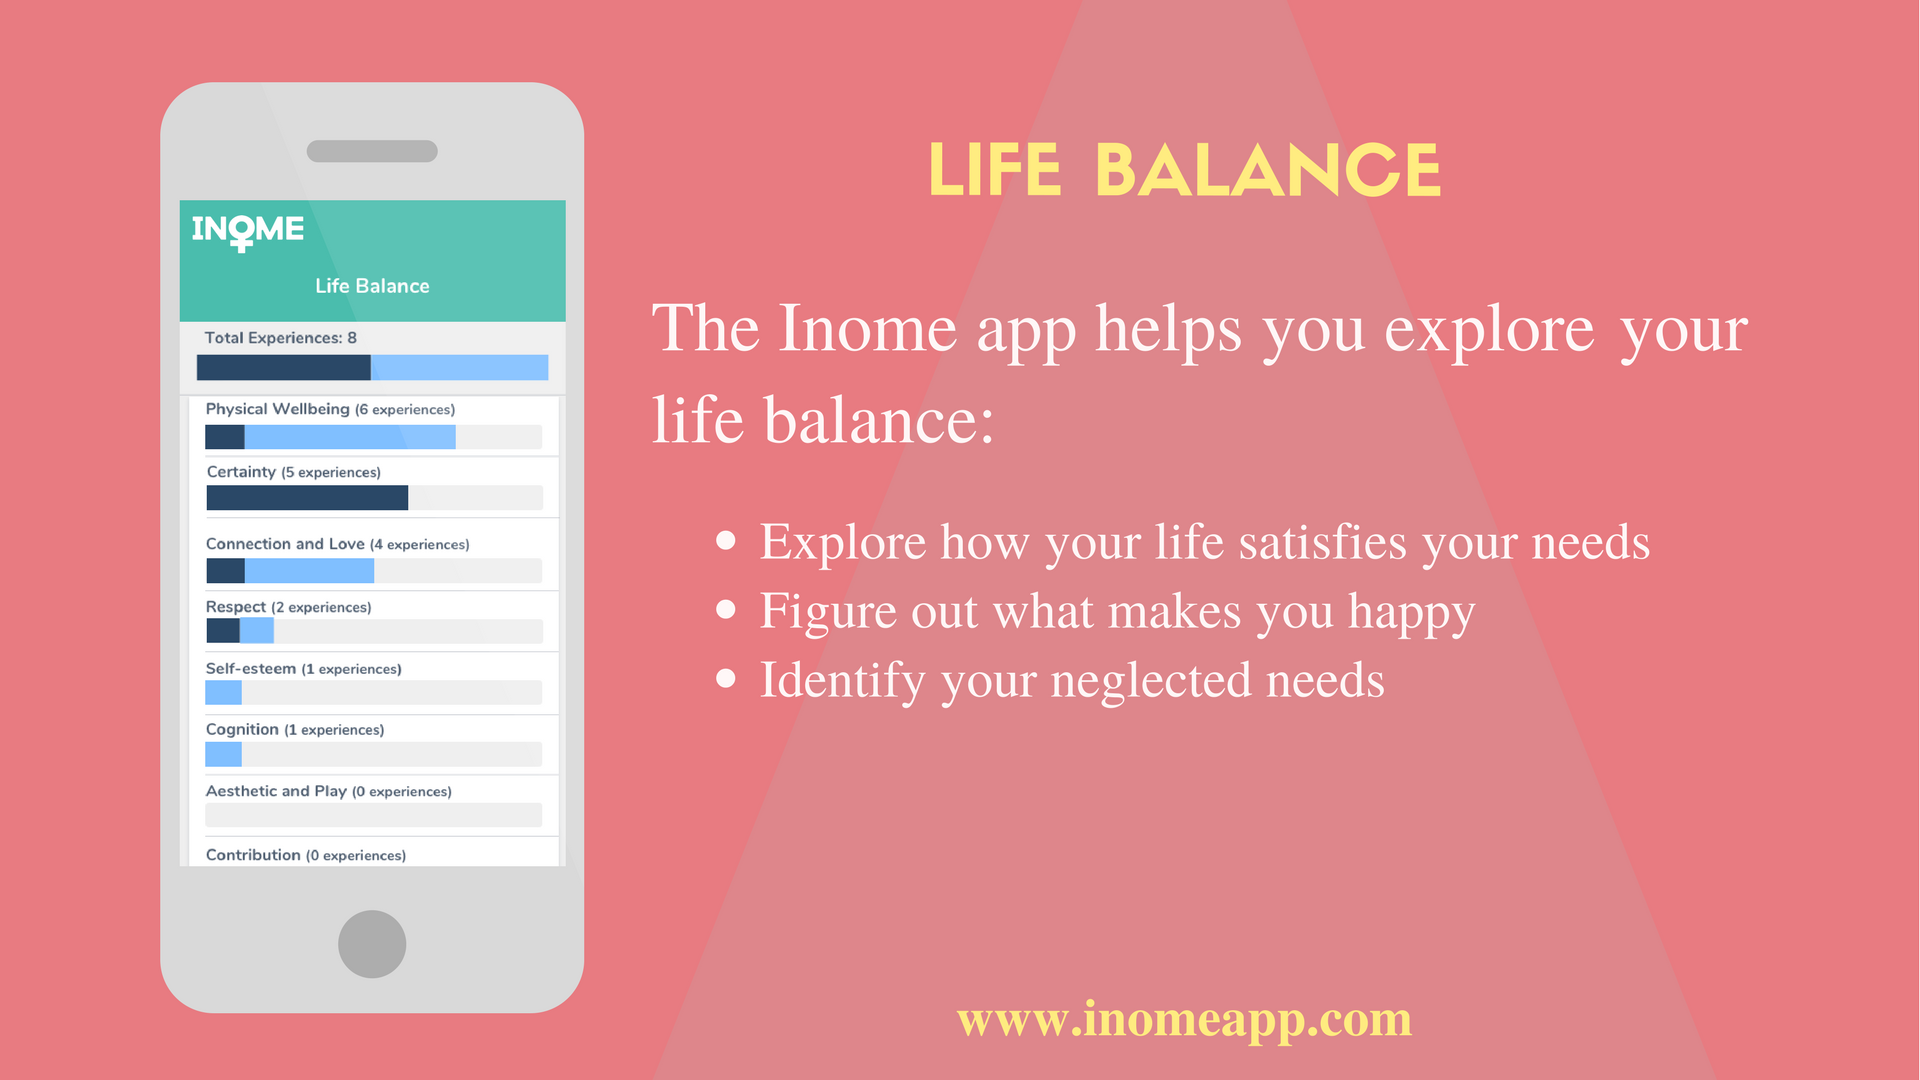 How is your life balanced?